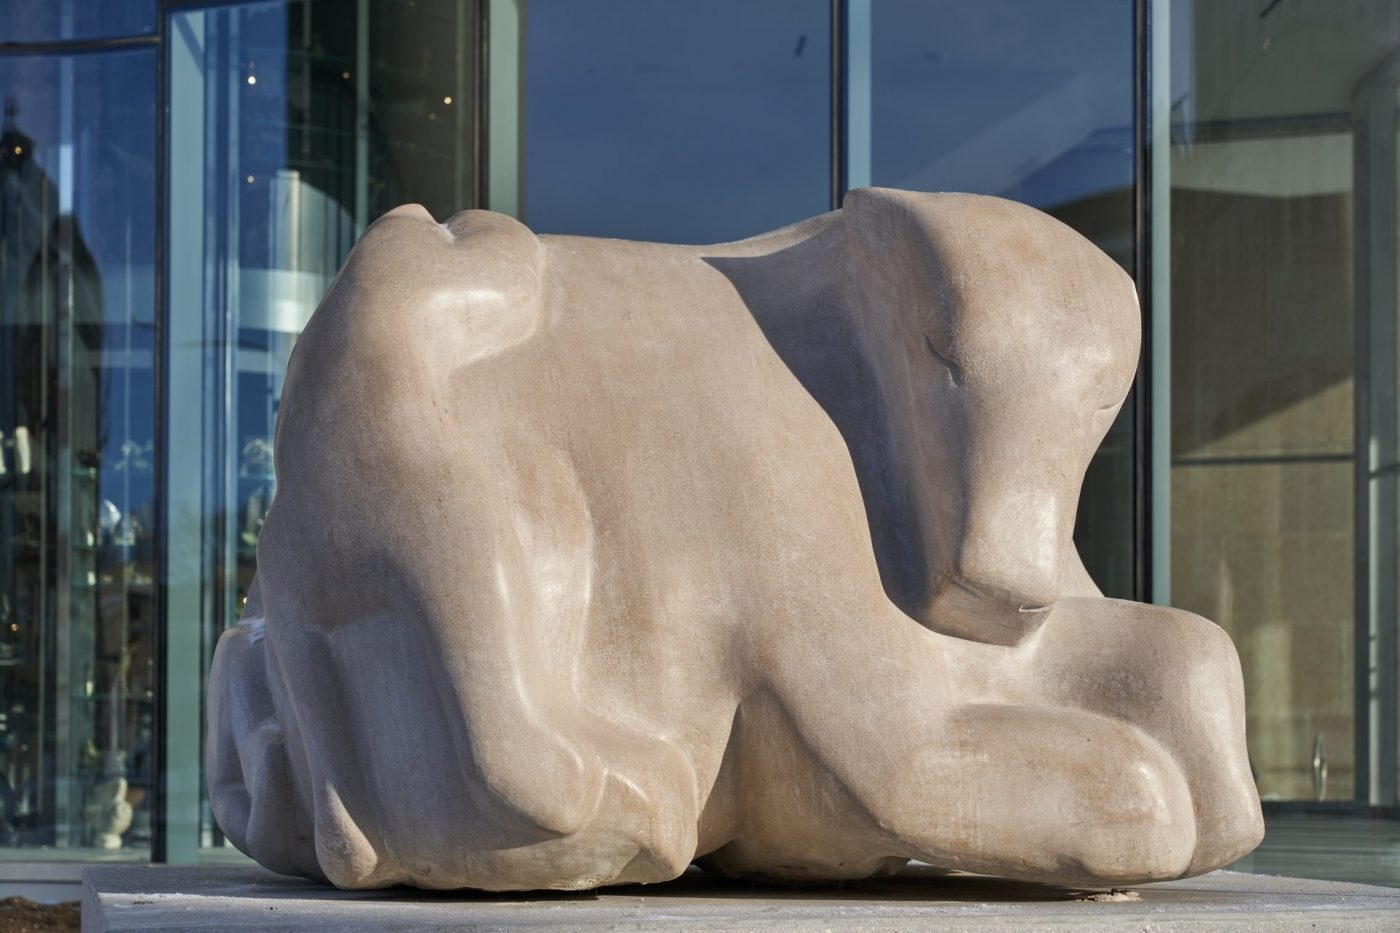 Abraham Anghik Ruben. Playtime 2020. Indianalimestone. Collection of the WAG.-Commissioned by-Tannis M. Richardson CM-LLD